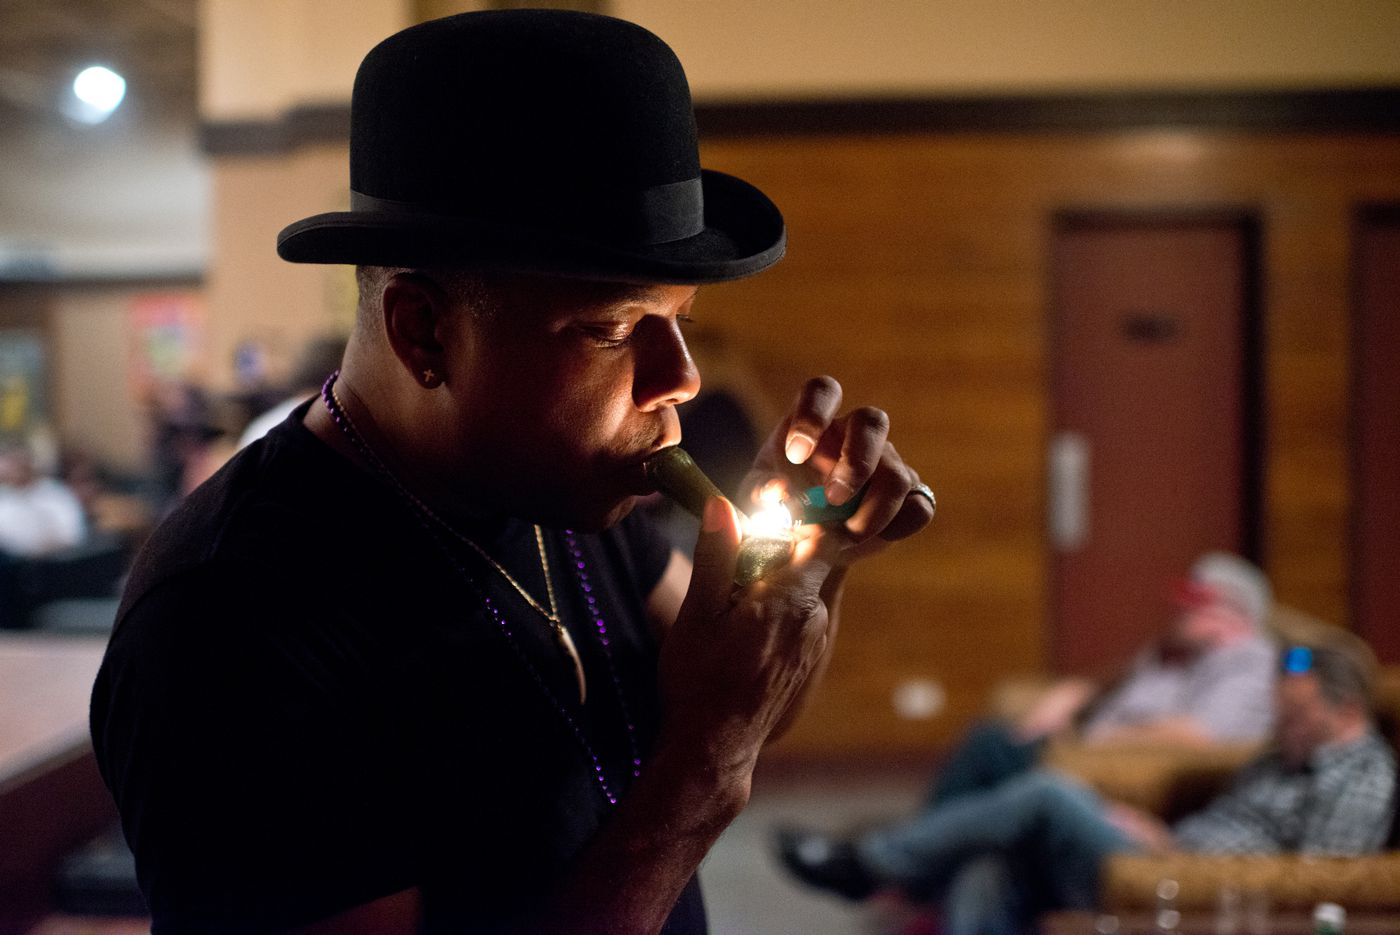 Comedian and entertainer Kelly Lee Williams smokes a pipe before the start of the comedy show he was emceeing at Pot Luck Events. Pot Luck Events hosted a comedy show at their location on 3rd Avenue in Anchorage on July 1, 2015. The club describes itself as a marijuana-friendly private club.